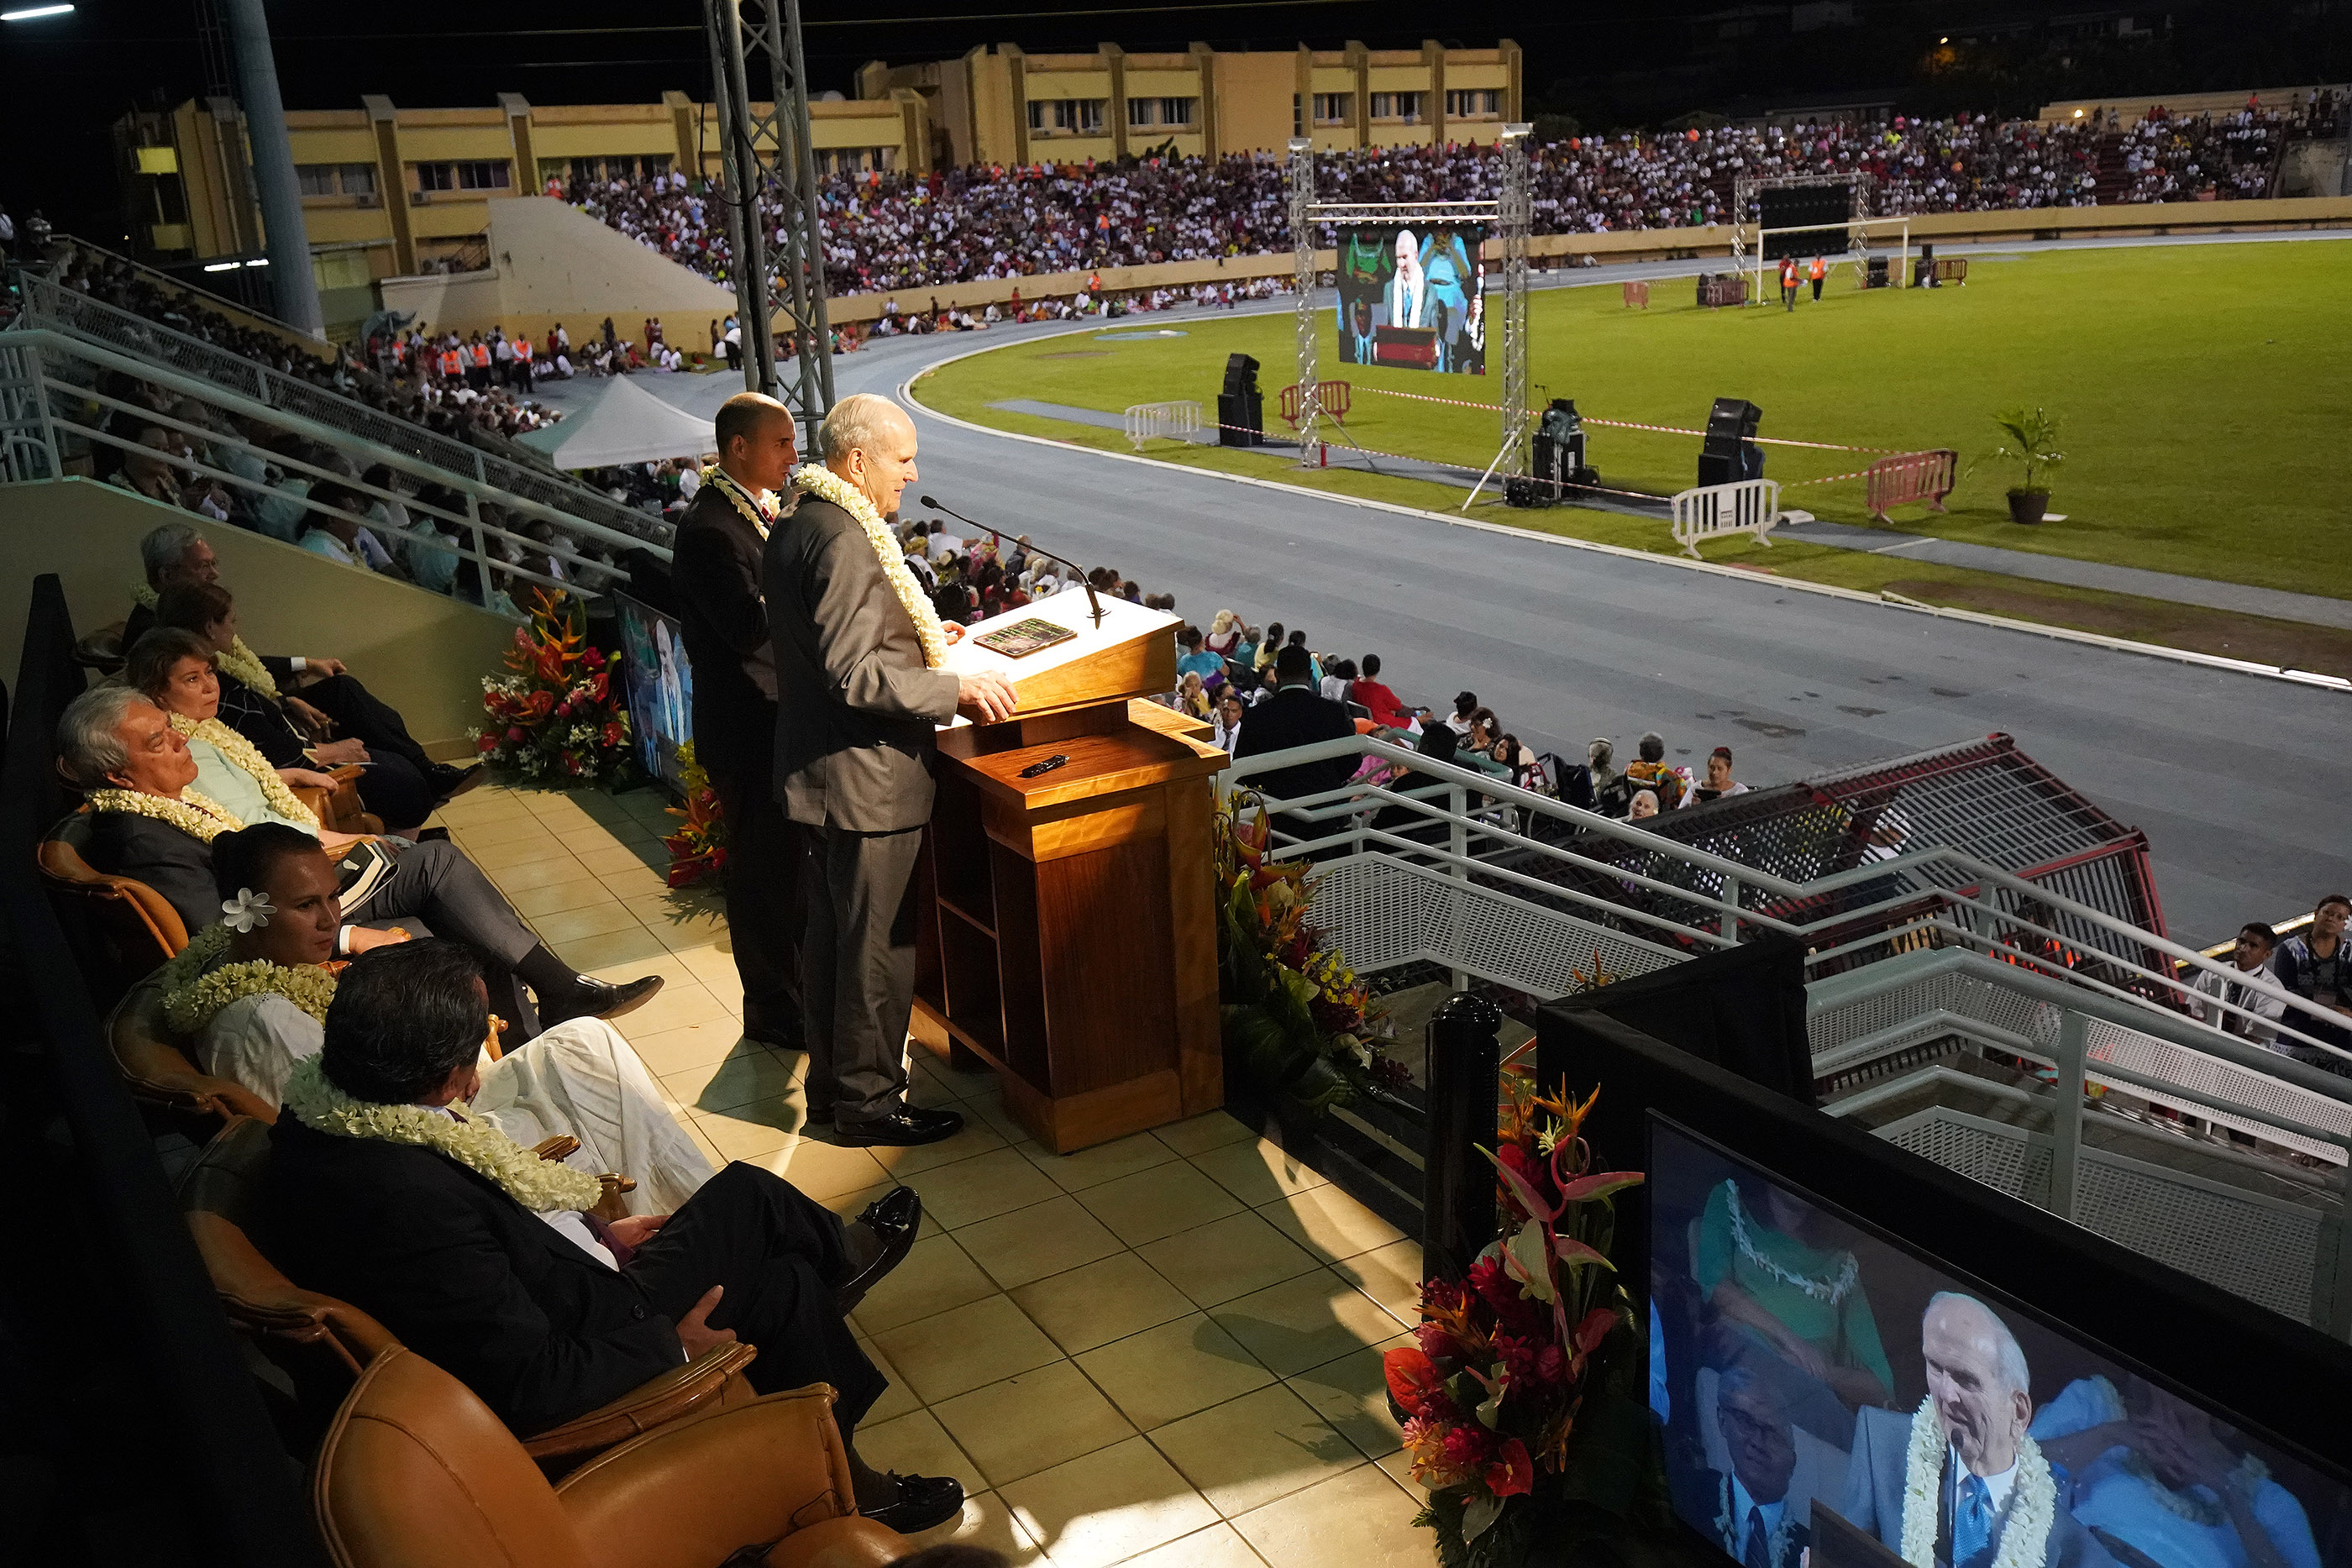 President Russell M. Nelson of The Church of Jesus Christ of Latter-day Saints speaks during a devotional at Stade Pater stadium in Papeete, Tahiti, on May 24, 2019.